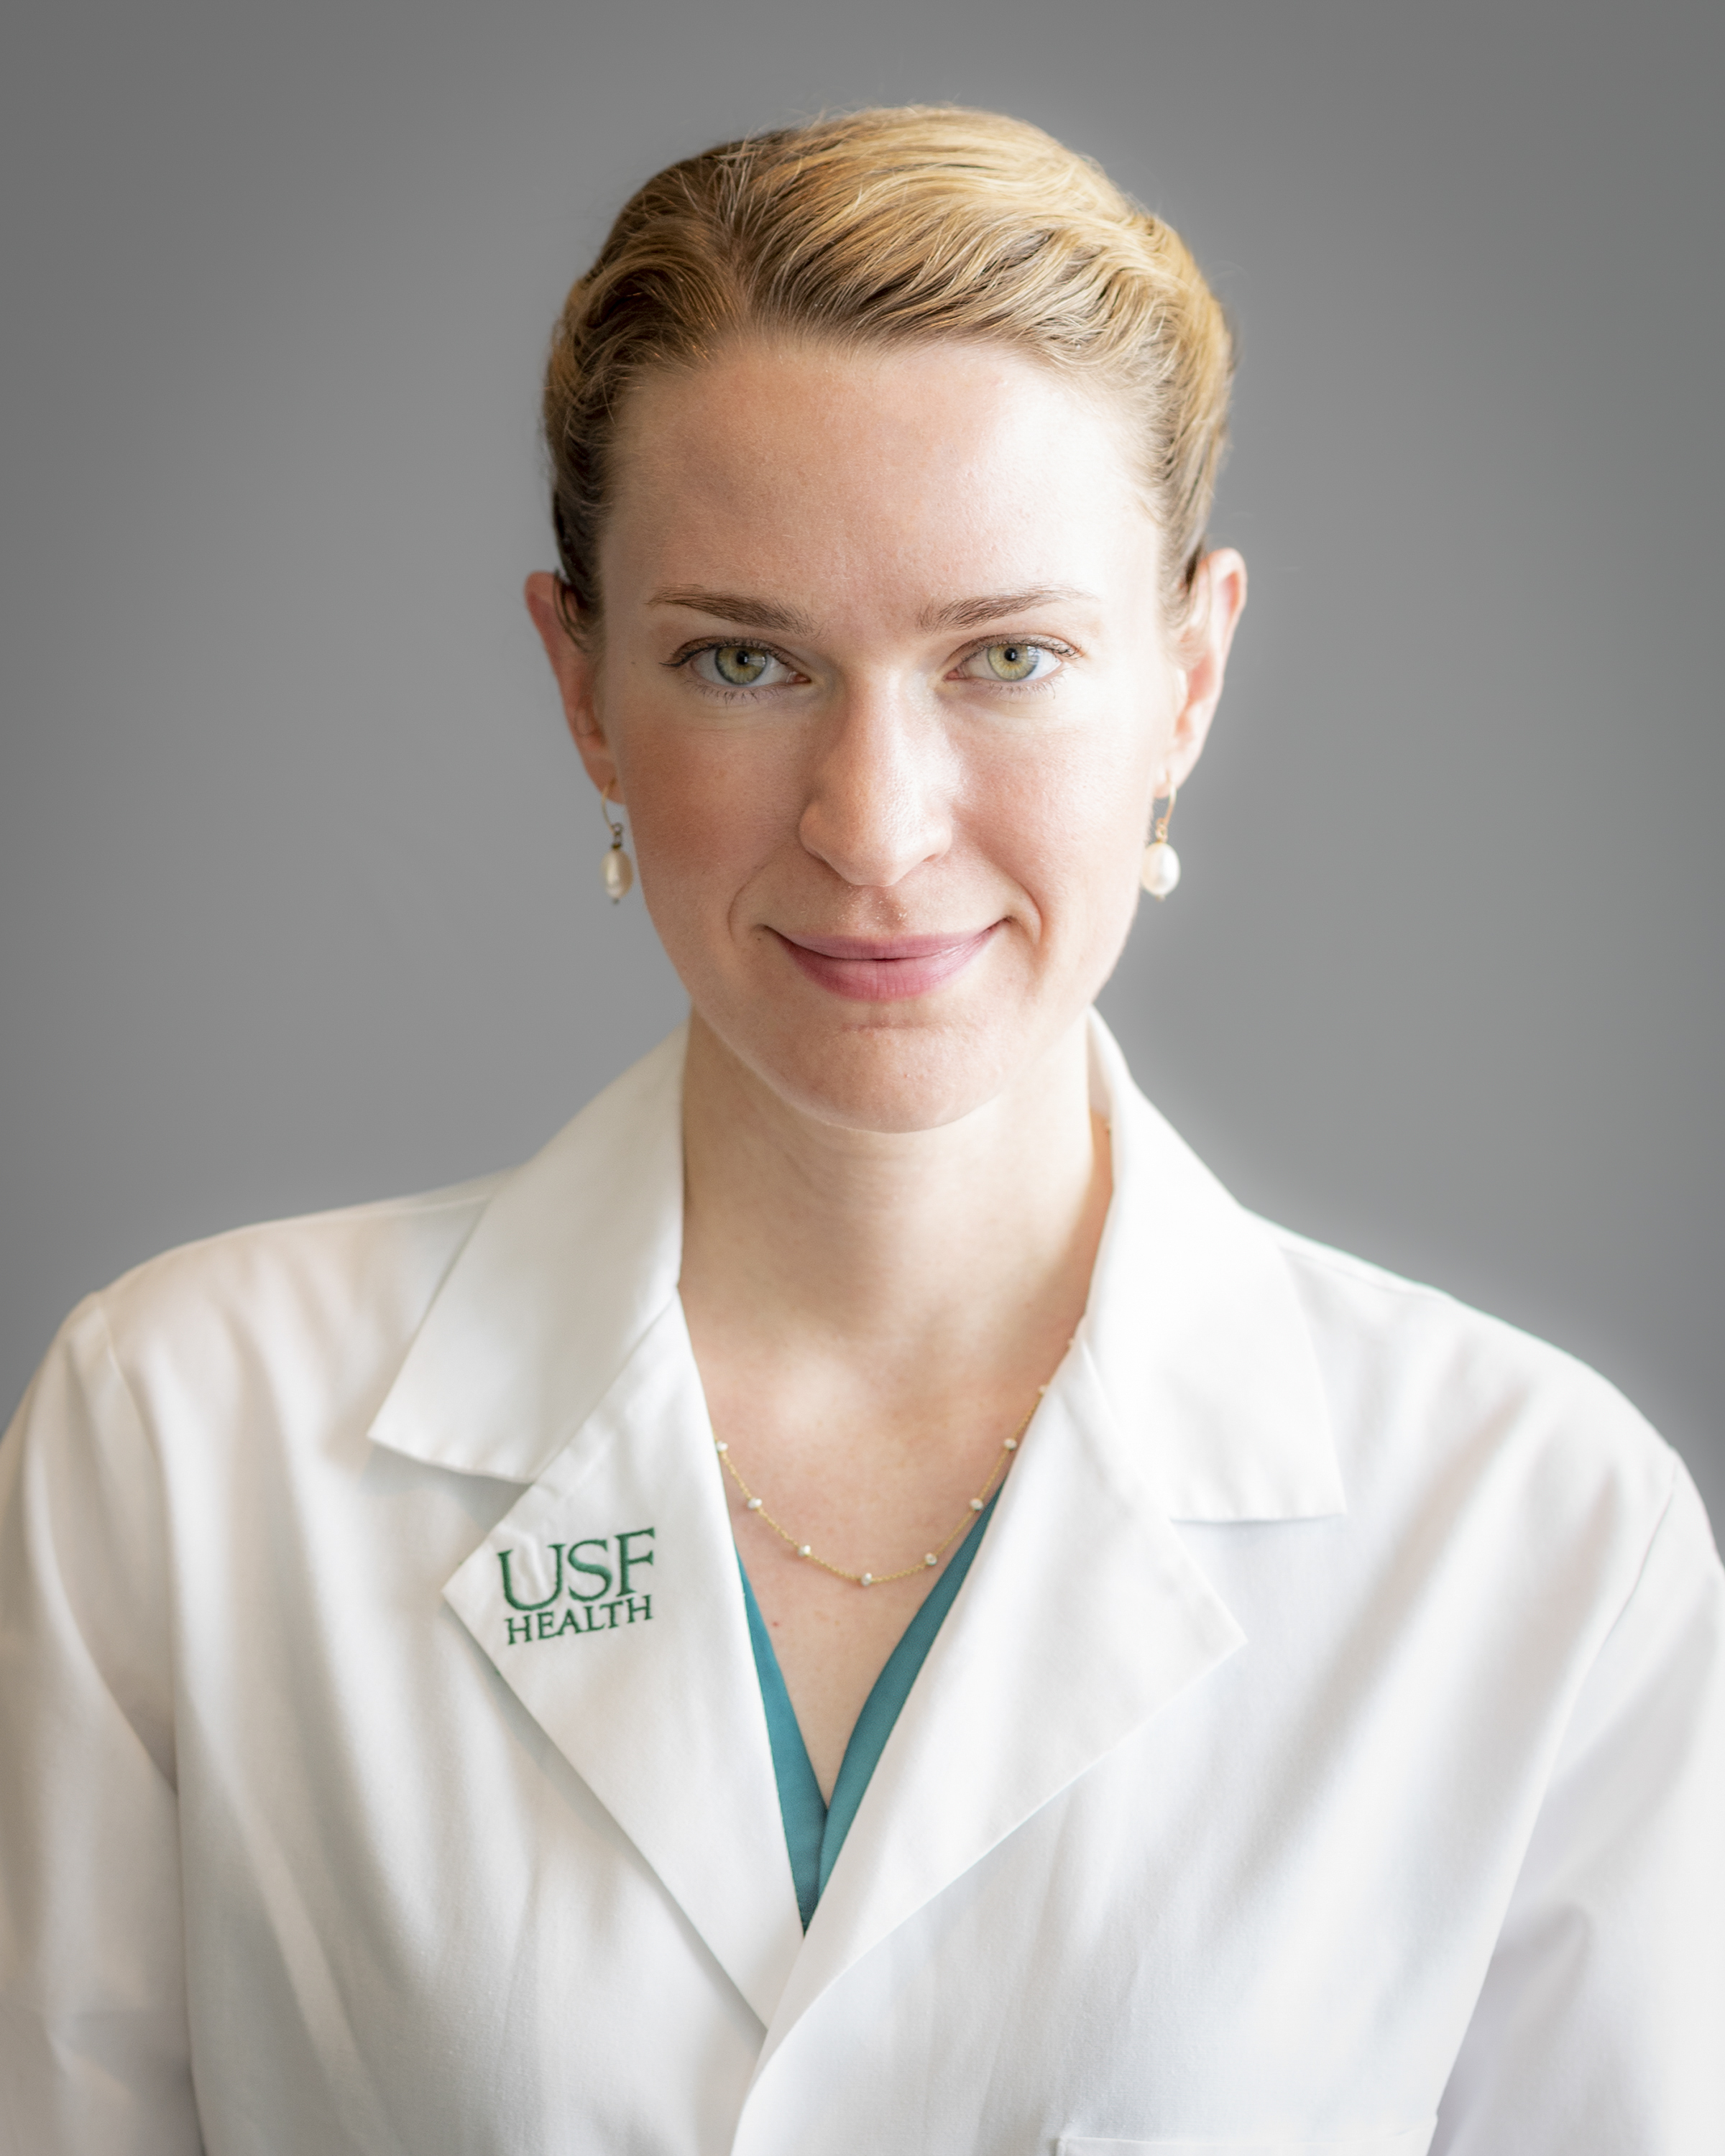 Dr Julia Toman Md Tampa Fl Facial Plastic Surgery Otolaryngology Book Appointment